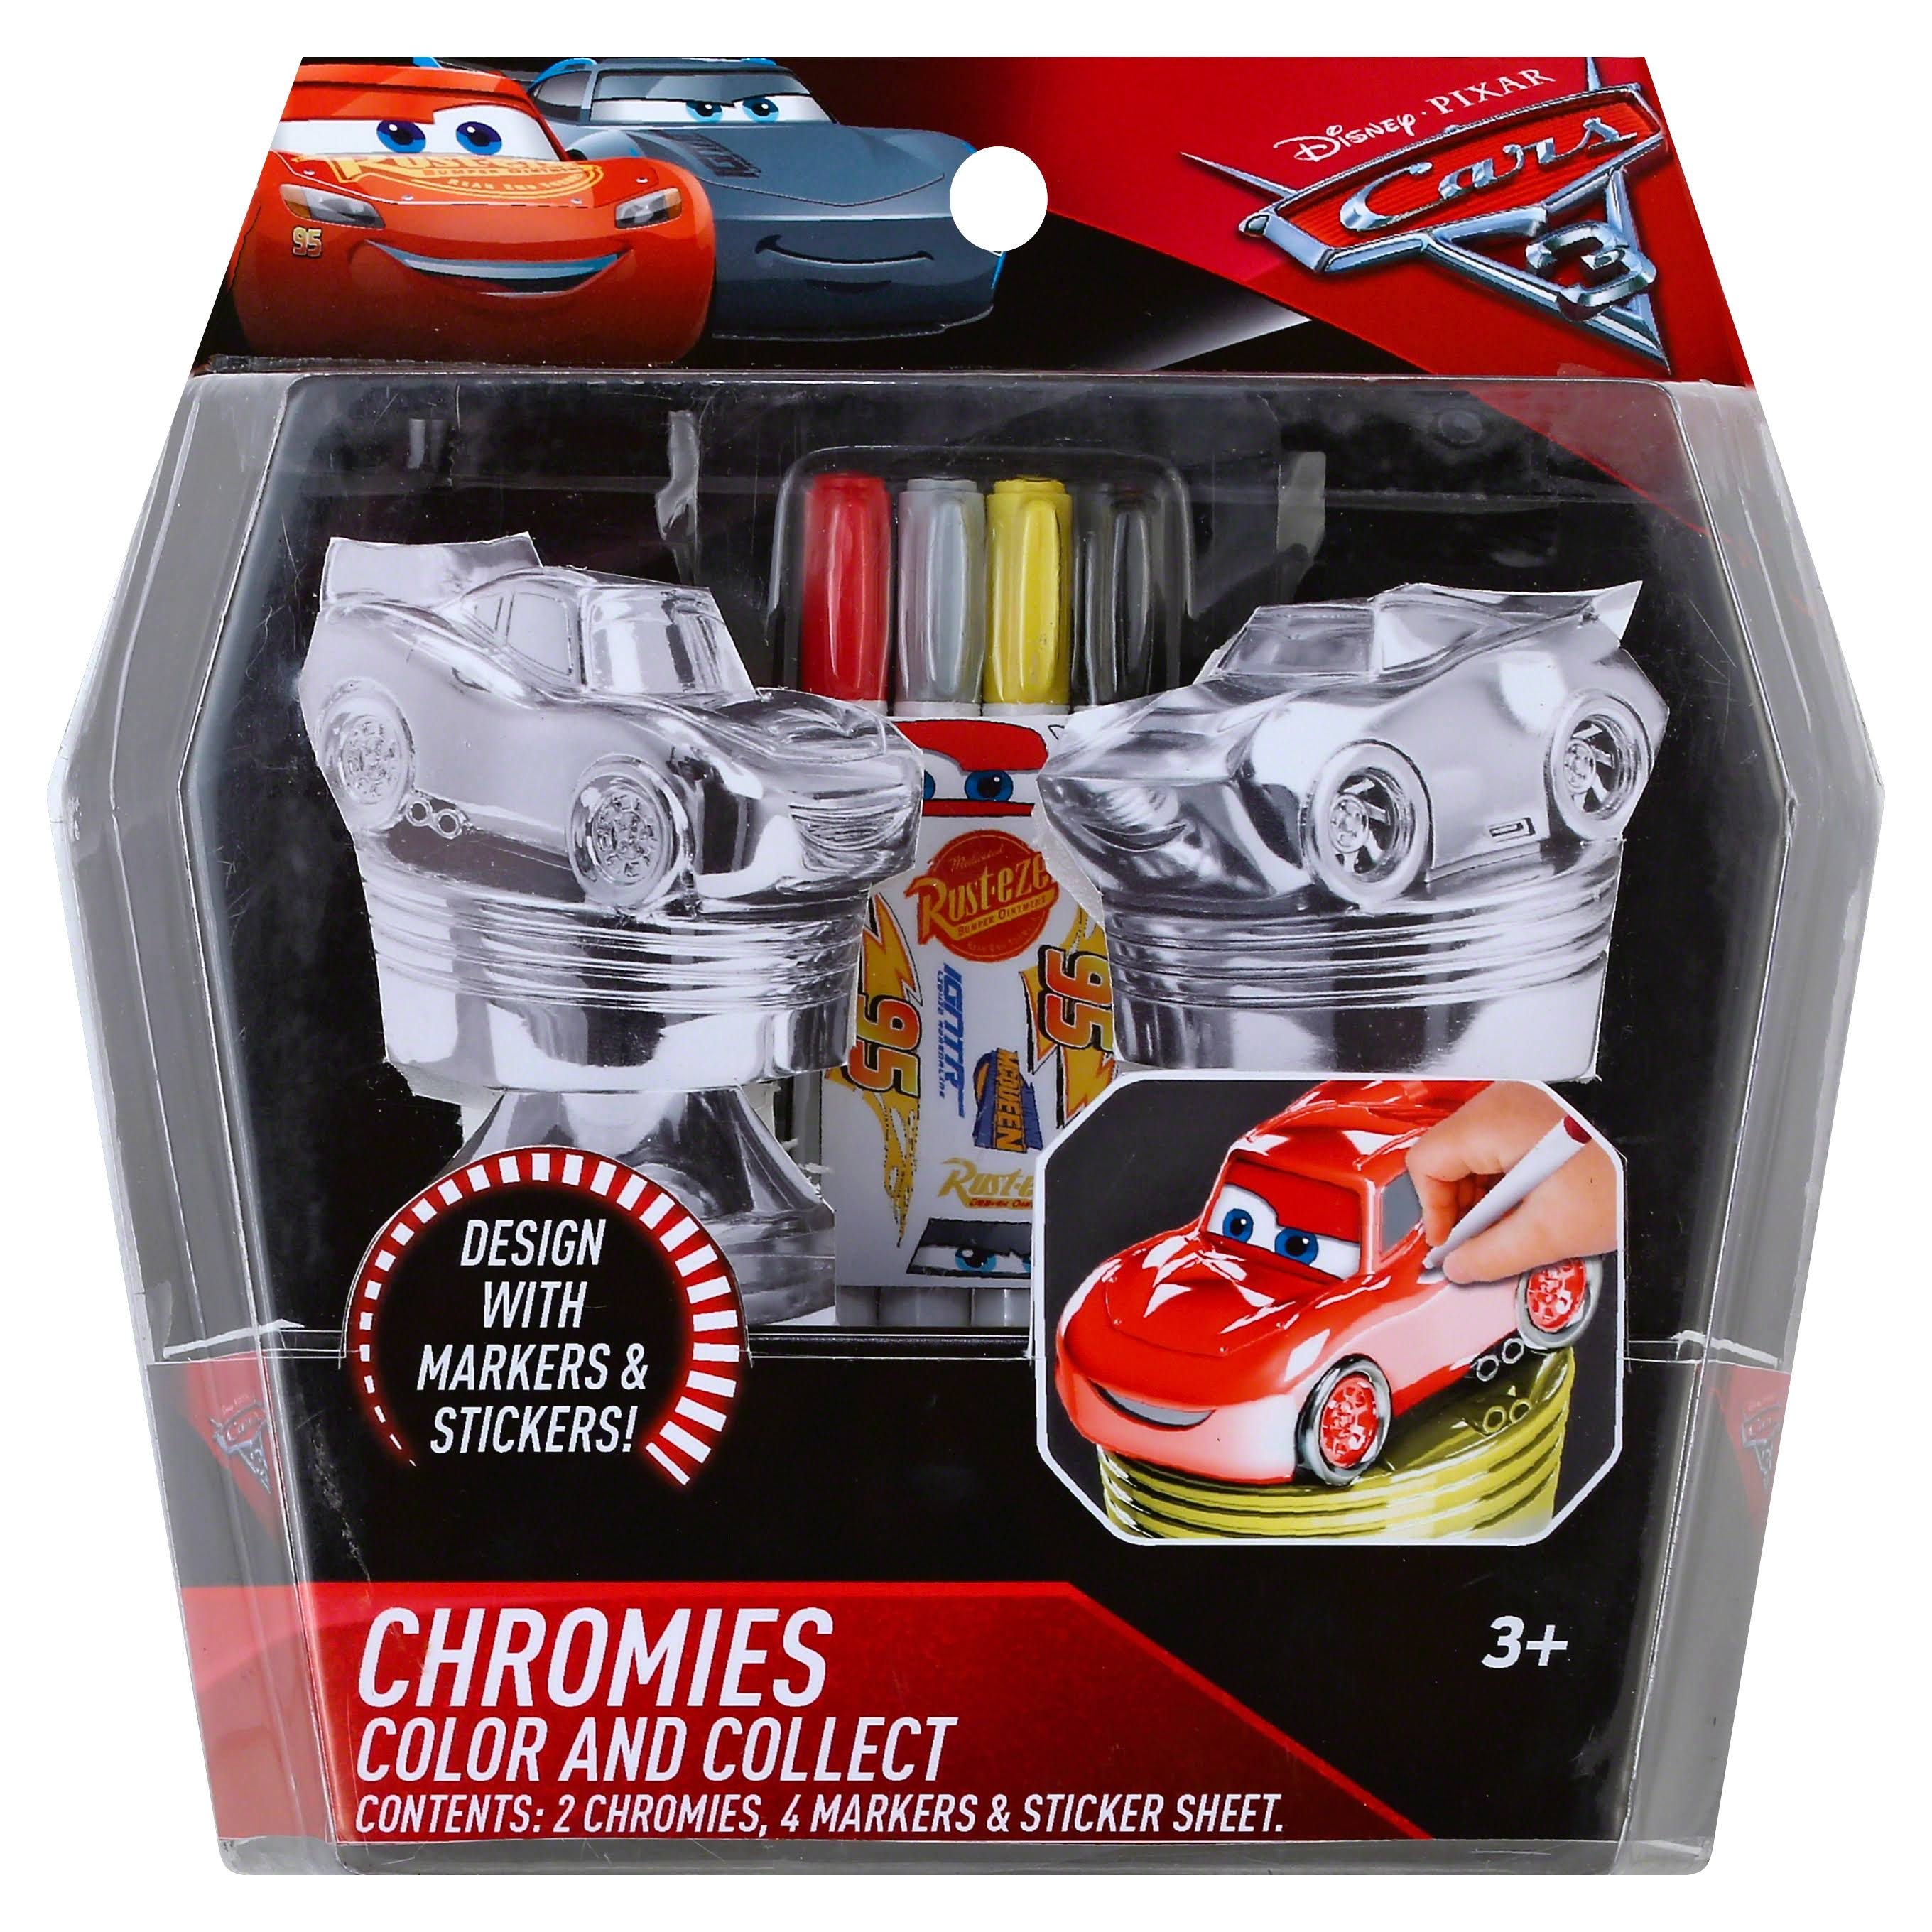 Disney Pixar Cars 3 Chromies Color and Collect Activity Playset